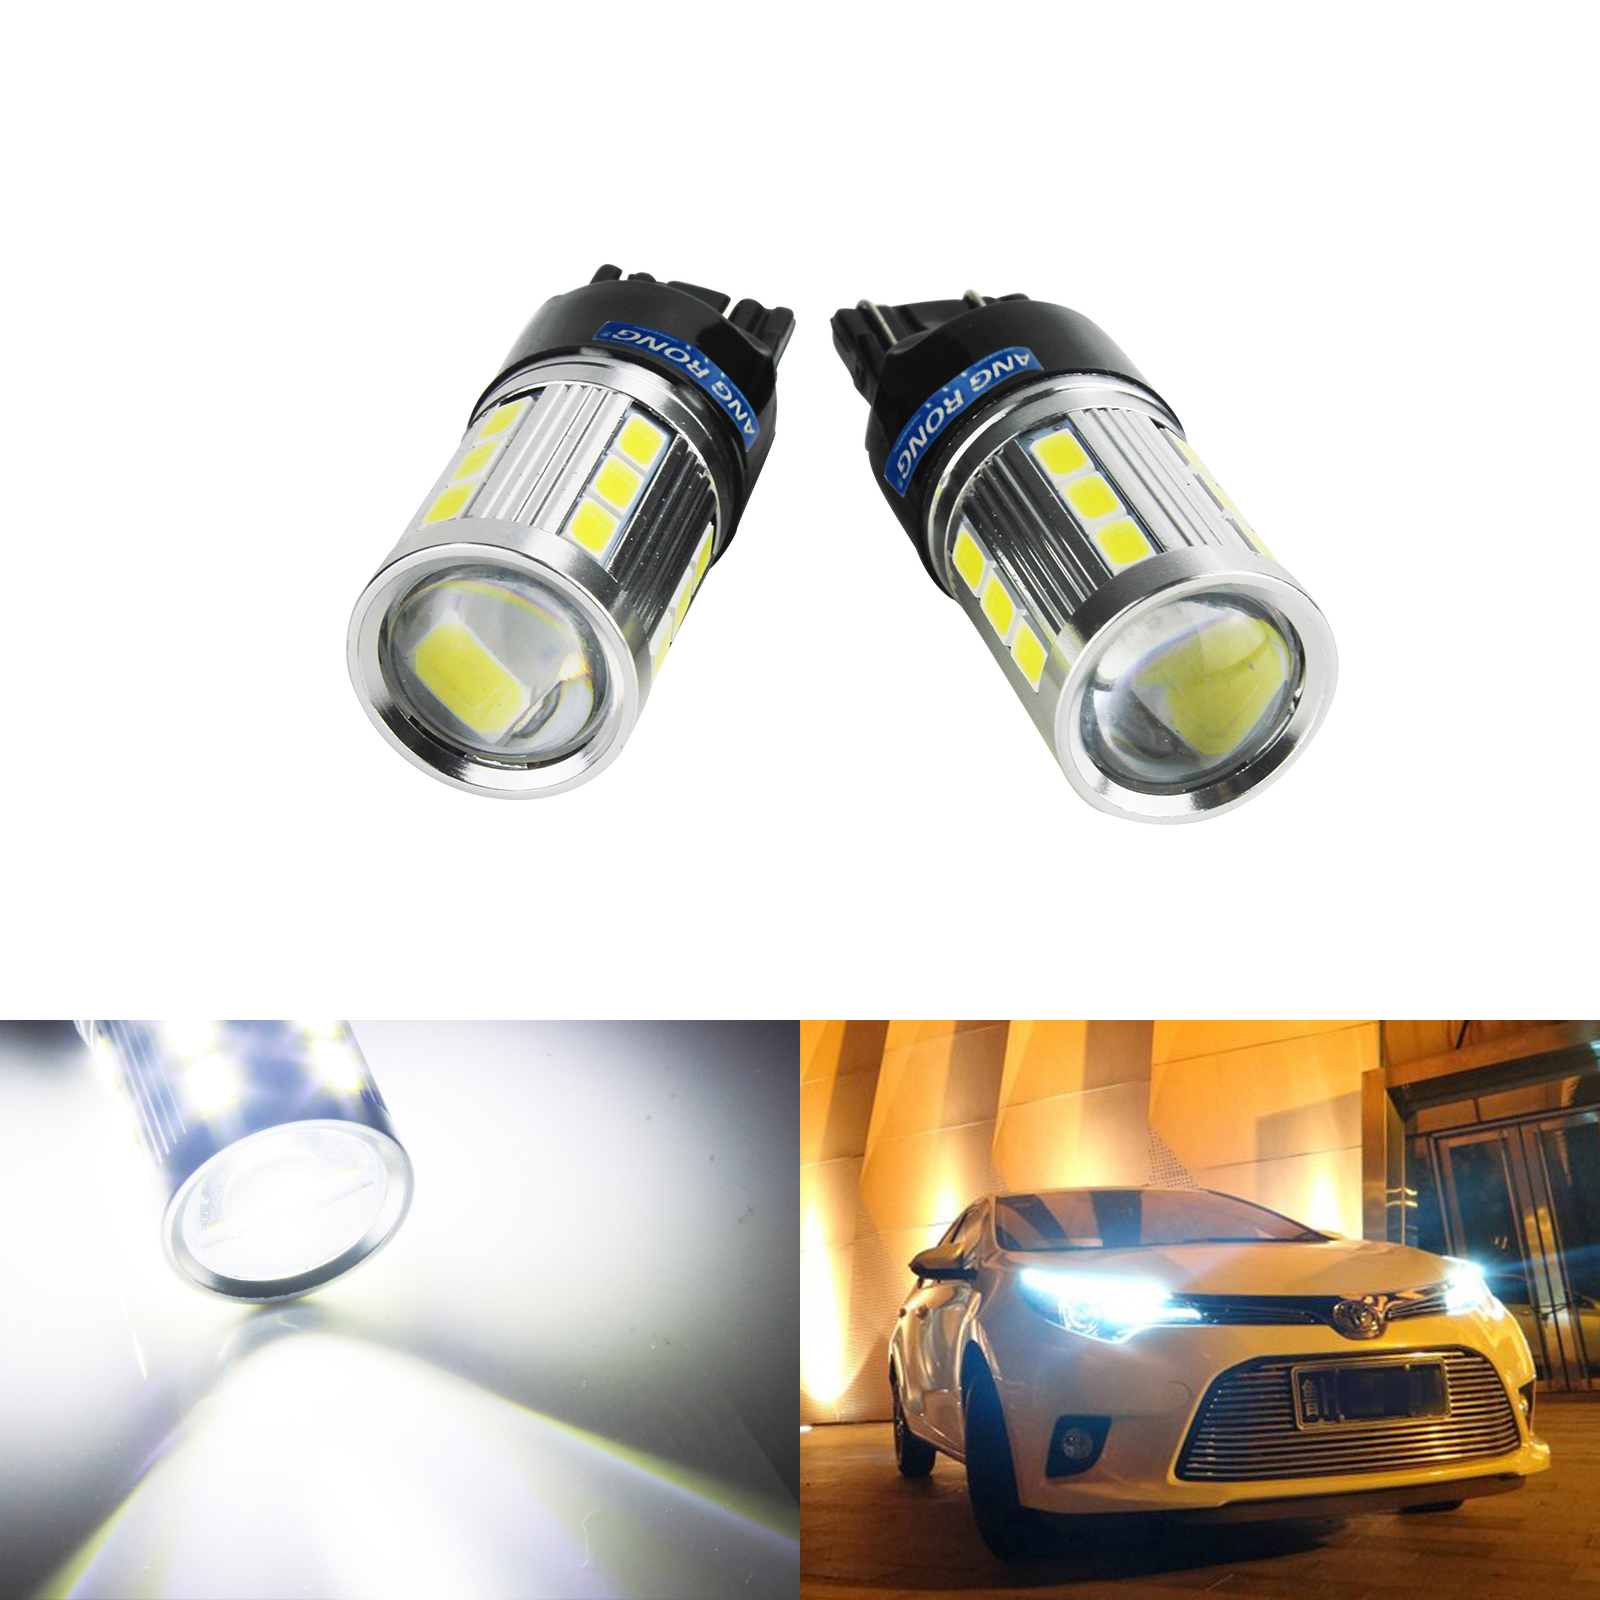 2 x T20 W21//5W 580 7443 Clear Standard DRL Bulbs Car Vehicle Daytime Running Driving Light Sidelight